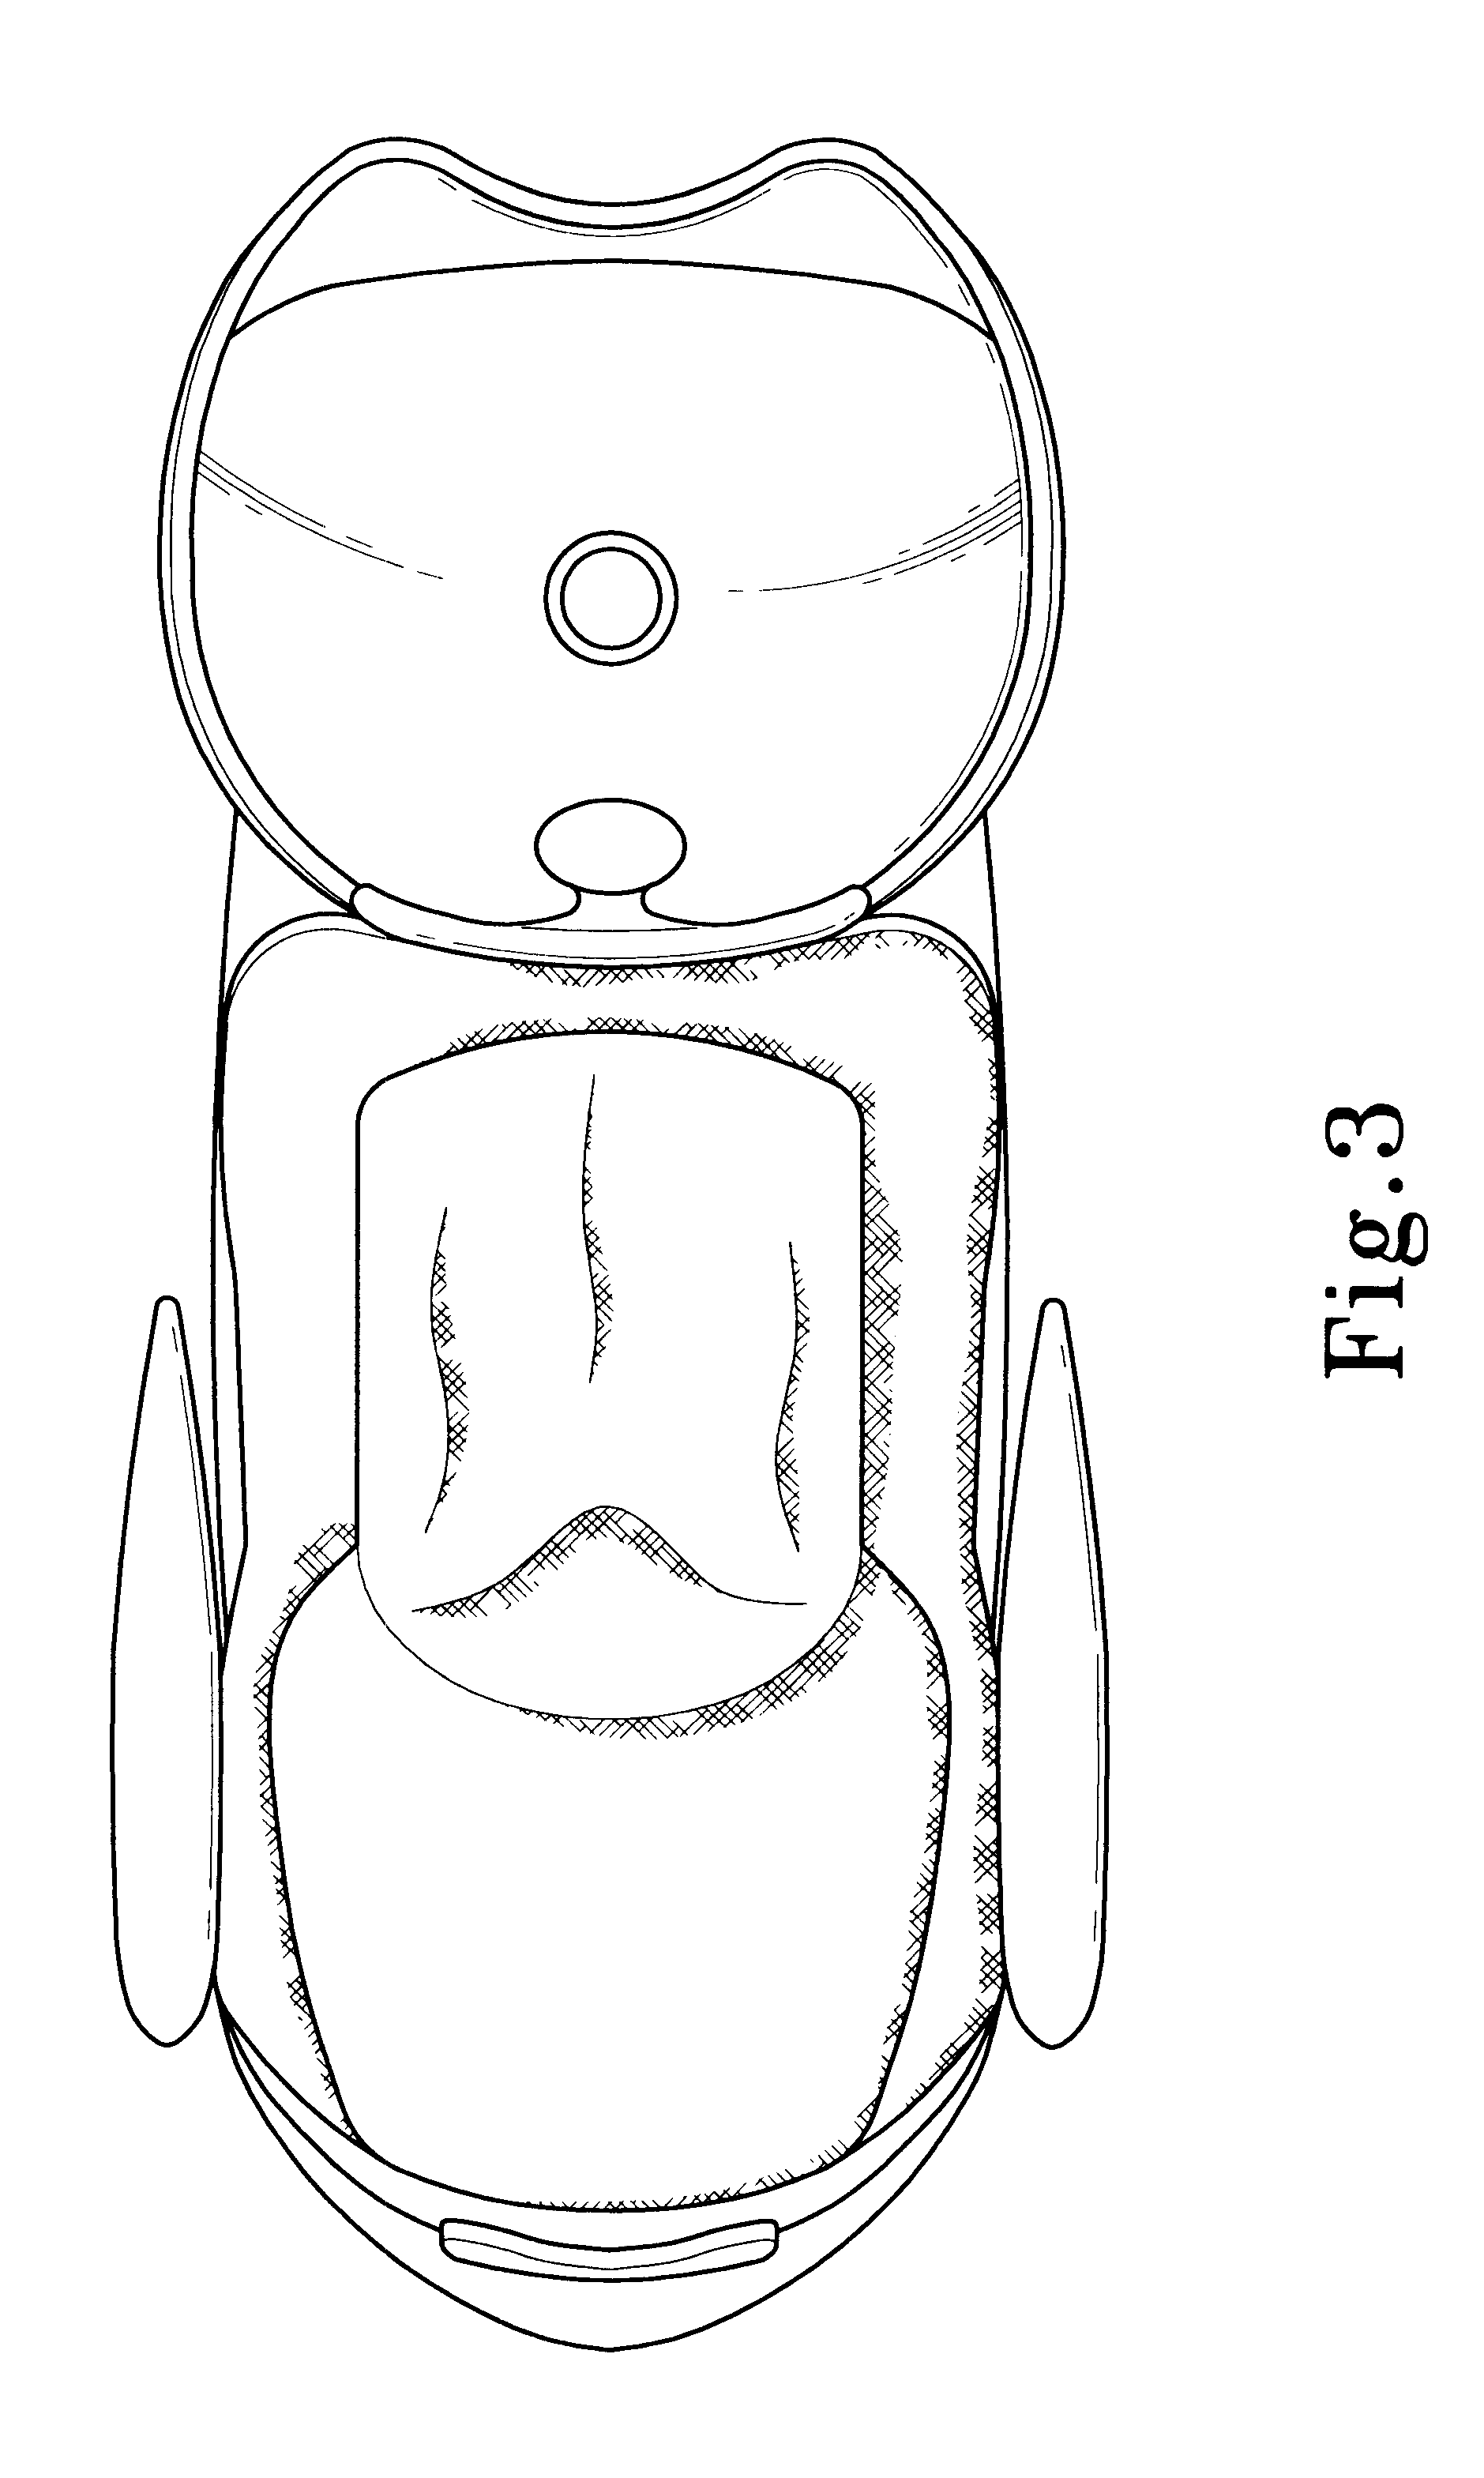 Salon chair dimensions - Patent Drawing